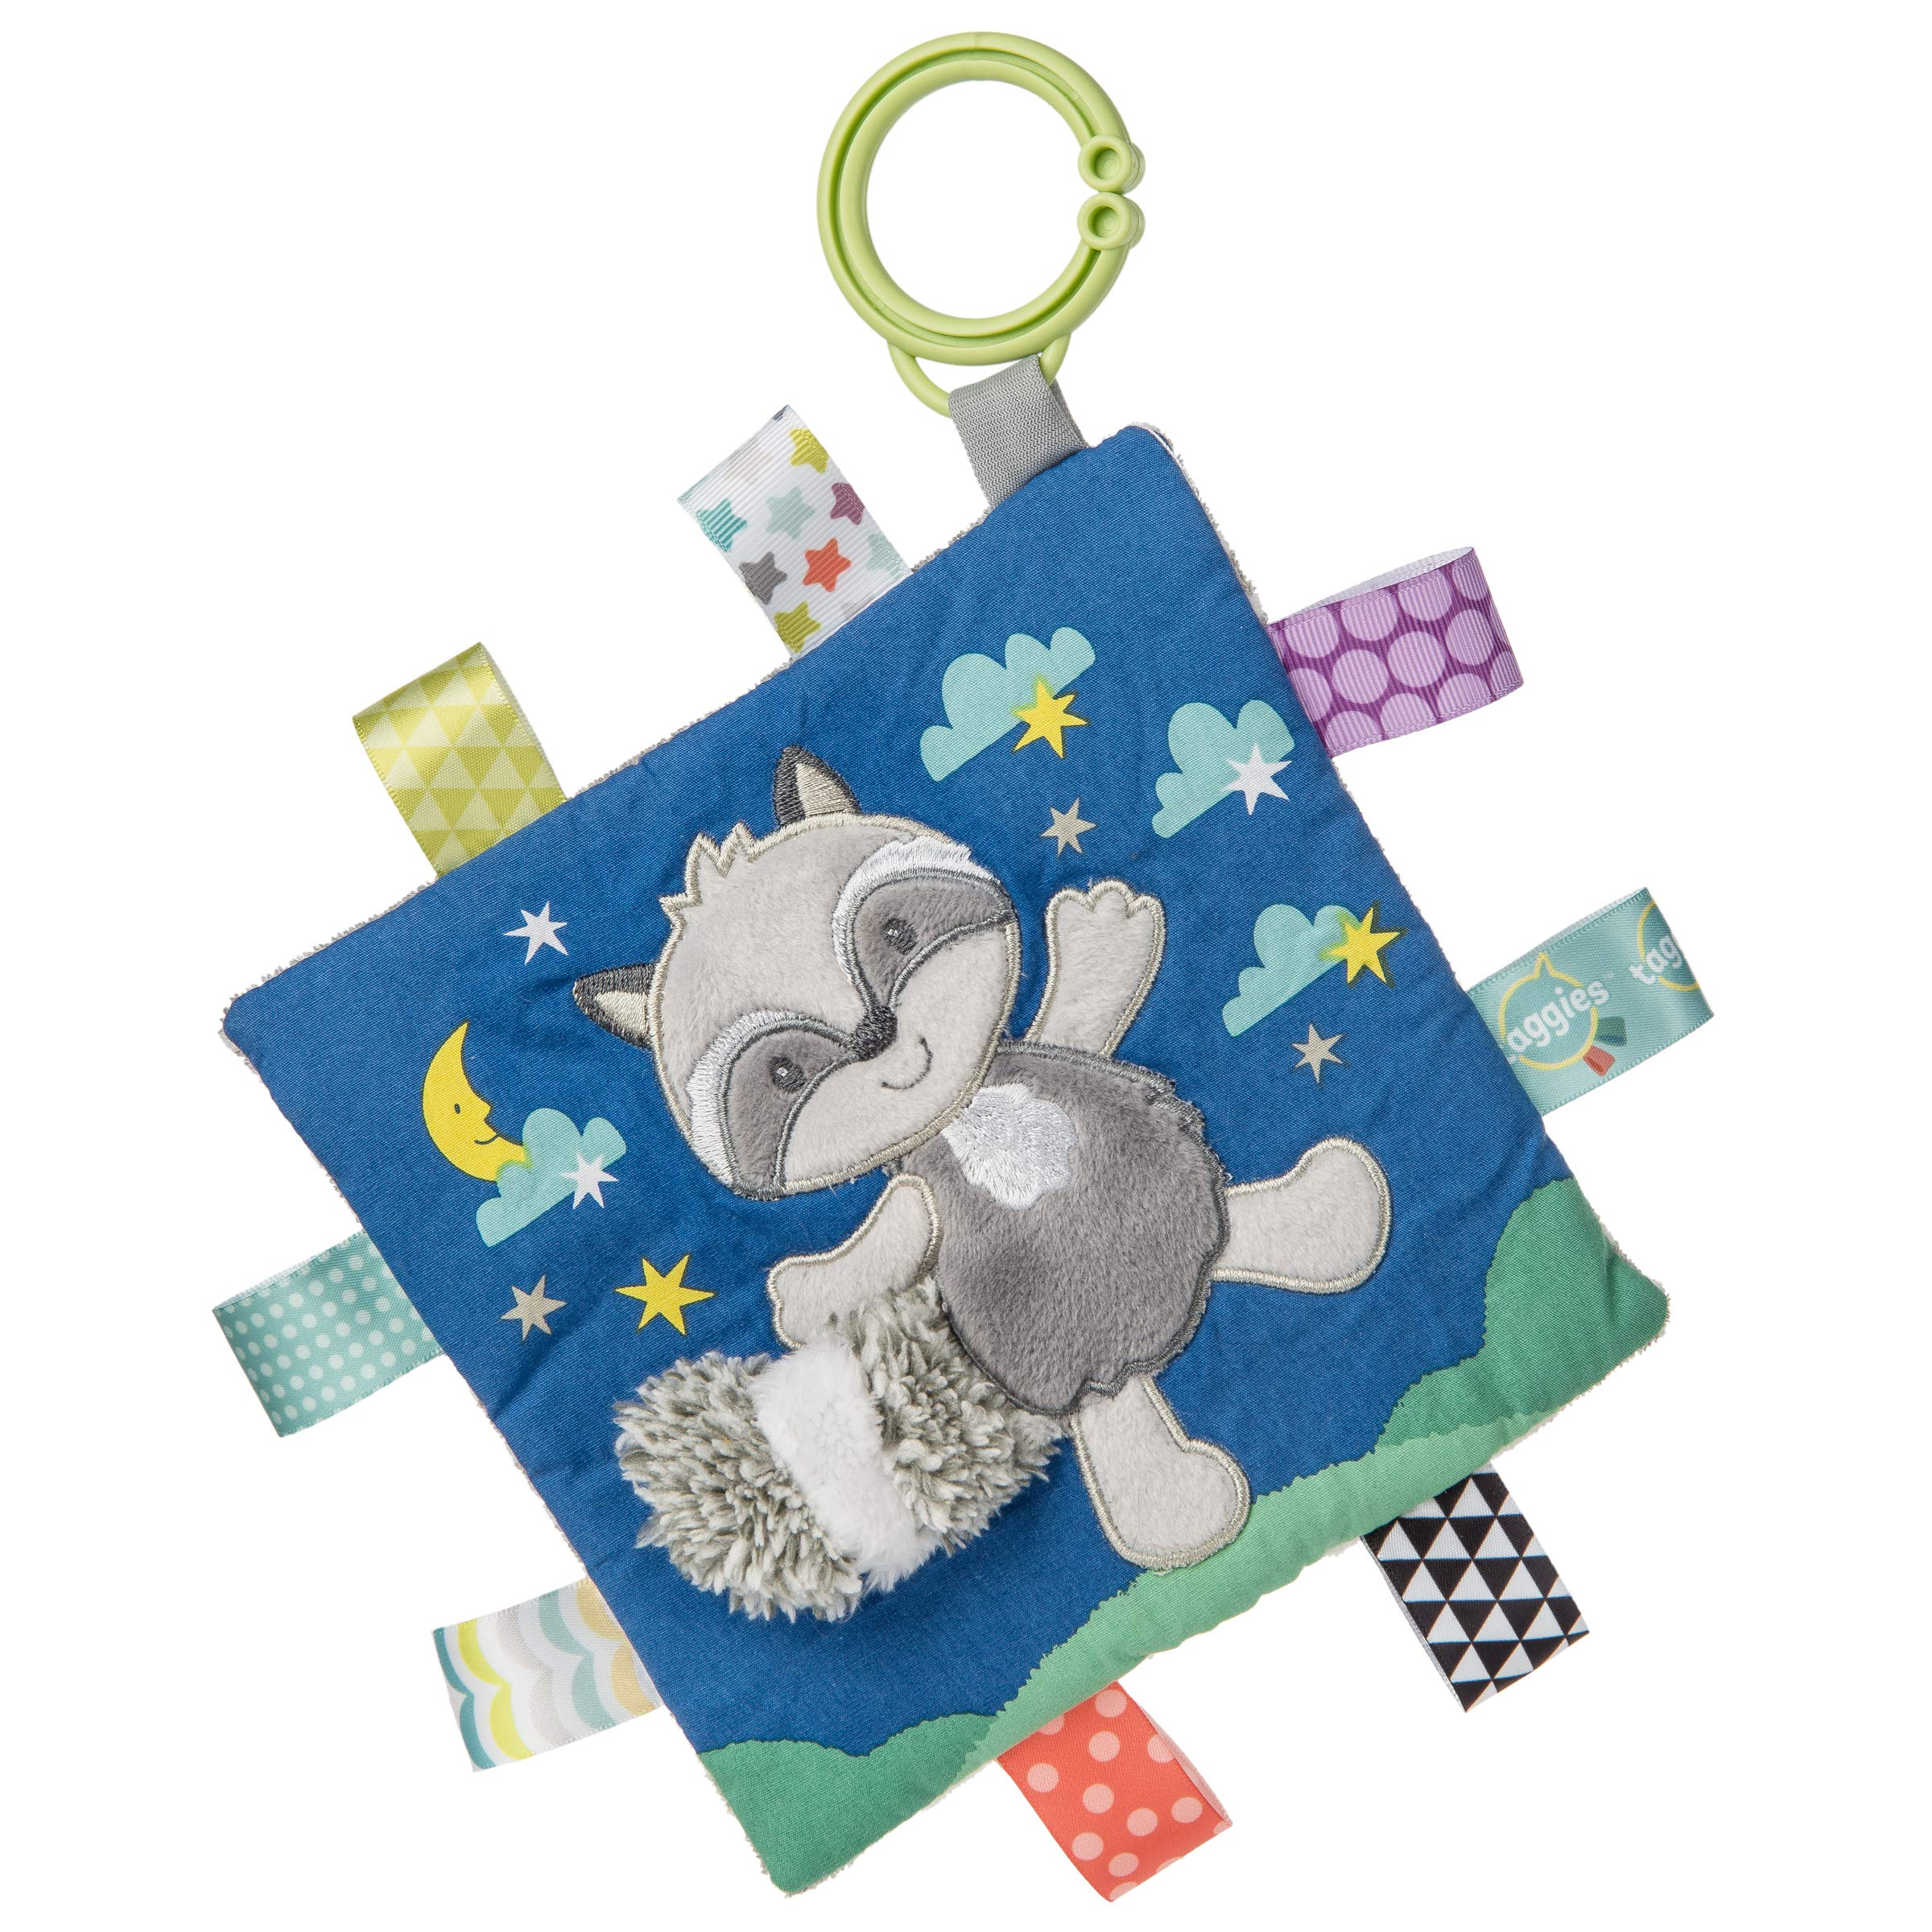 Taggies Soothing Sensory Crinkle Me Toy with Baby Paper and Squeaker, Harley Raccoon, 6.5 x 6.5-Inches by Taggies